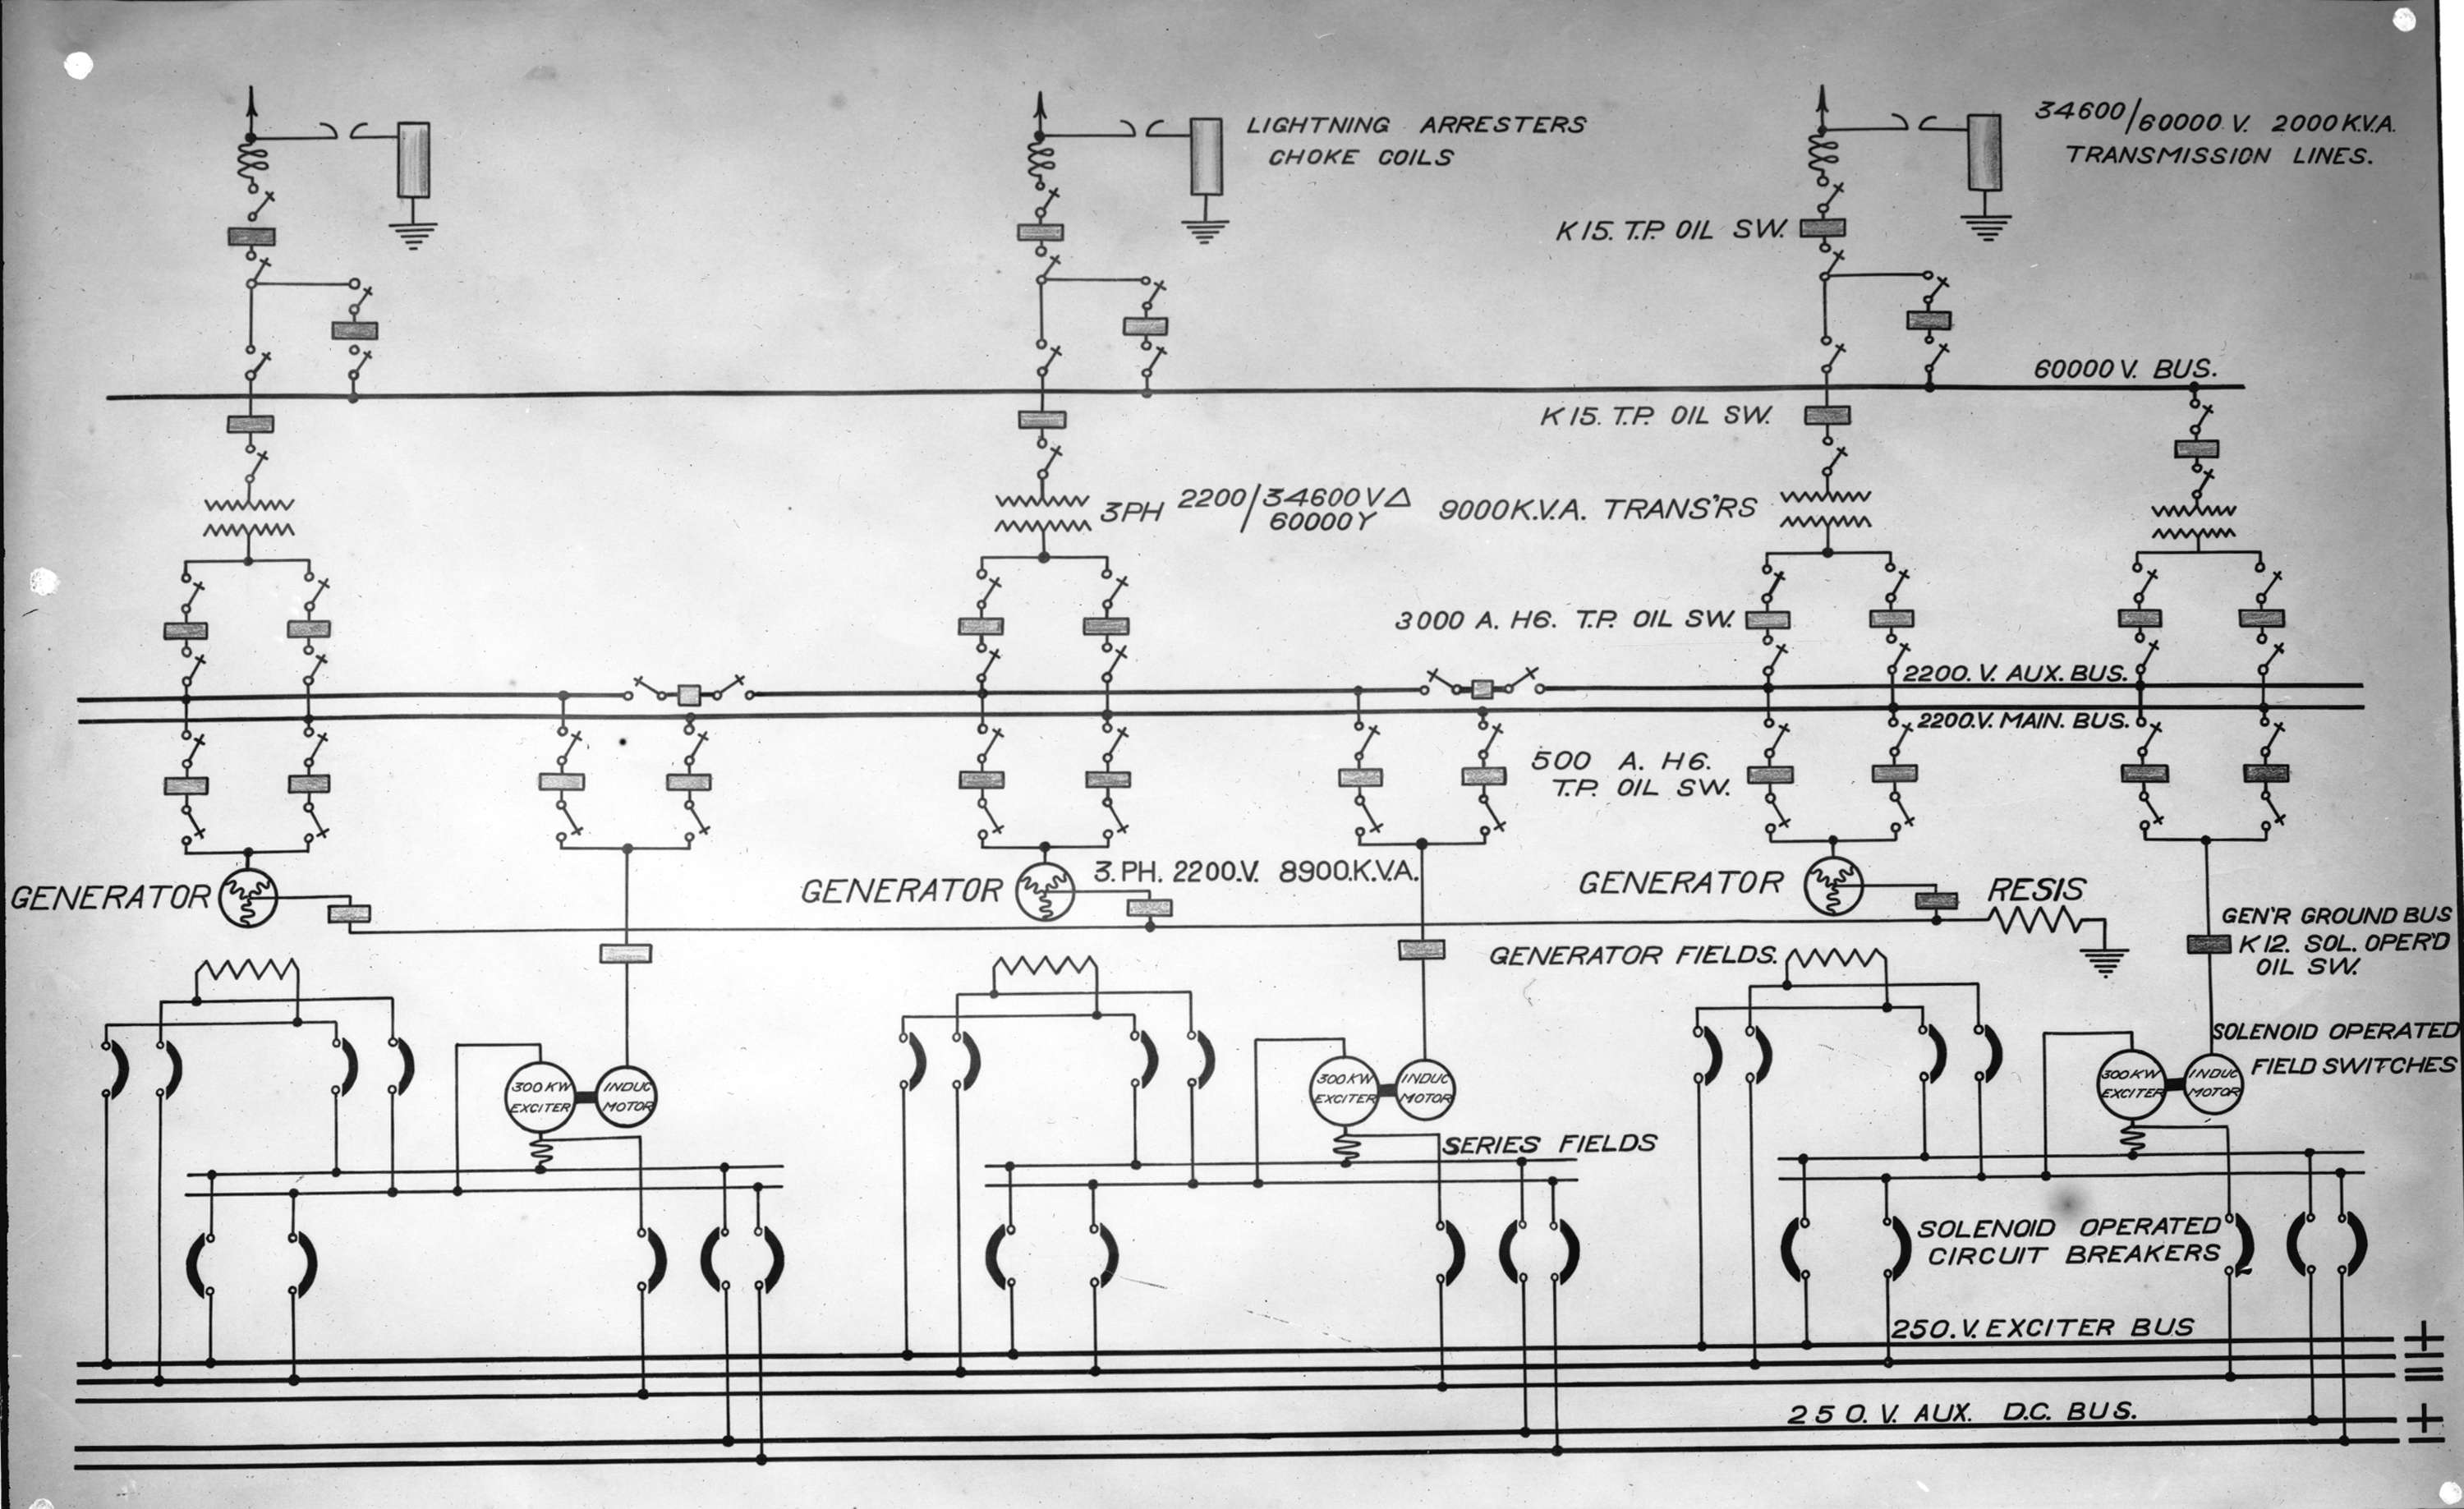 Diagram Of Electrical Connections For Buntzen Lake Power Plant Number Two